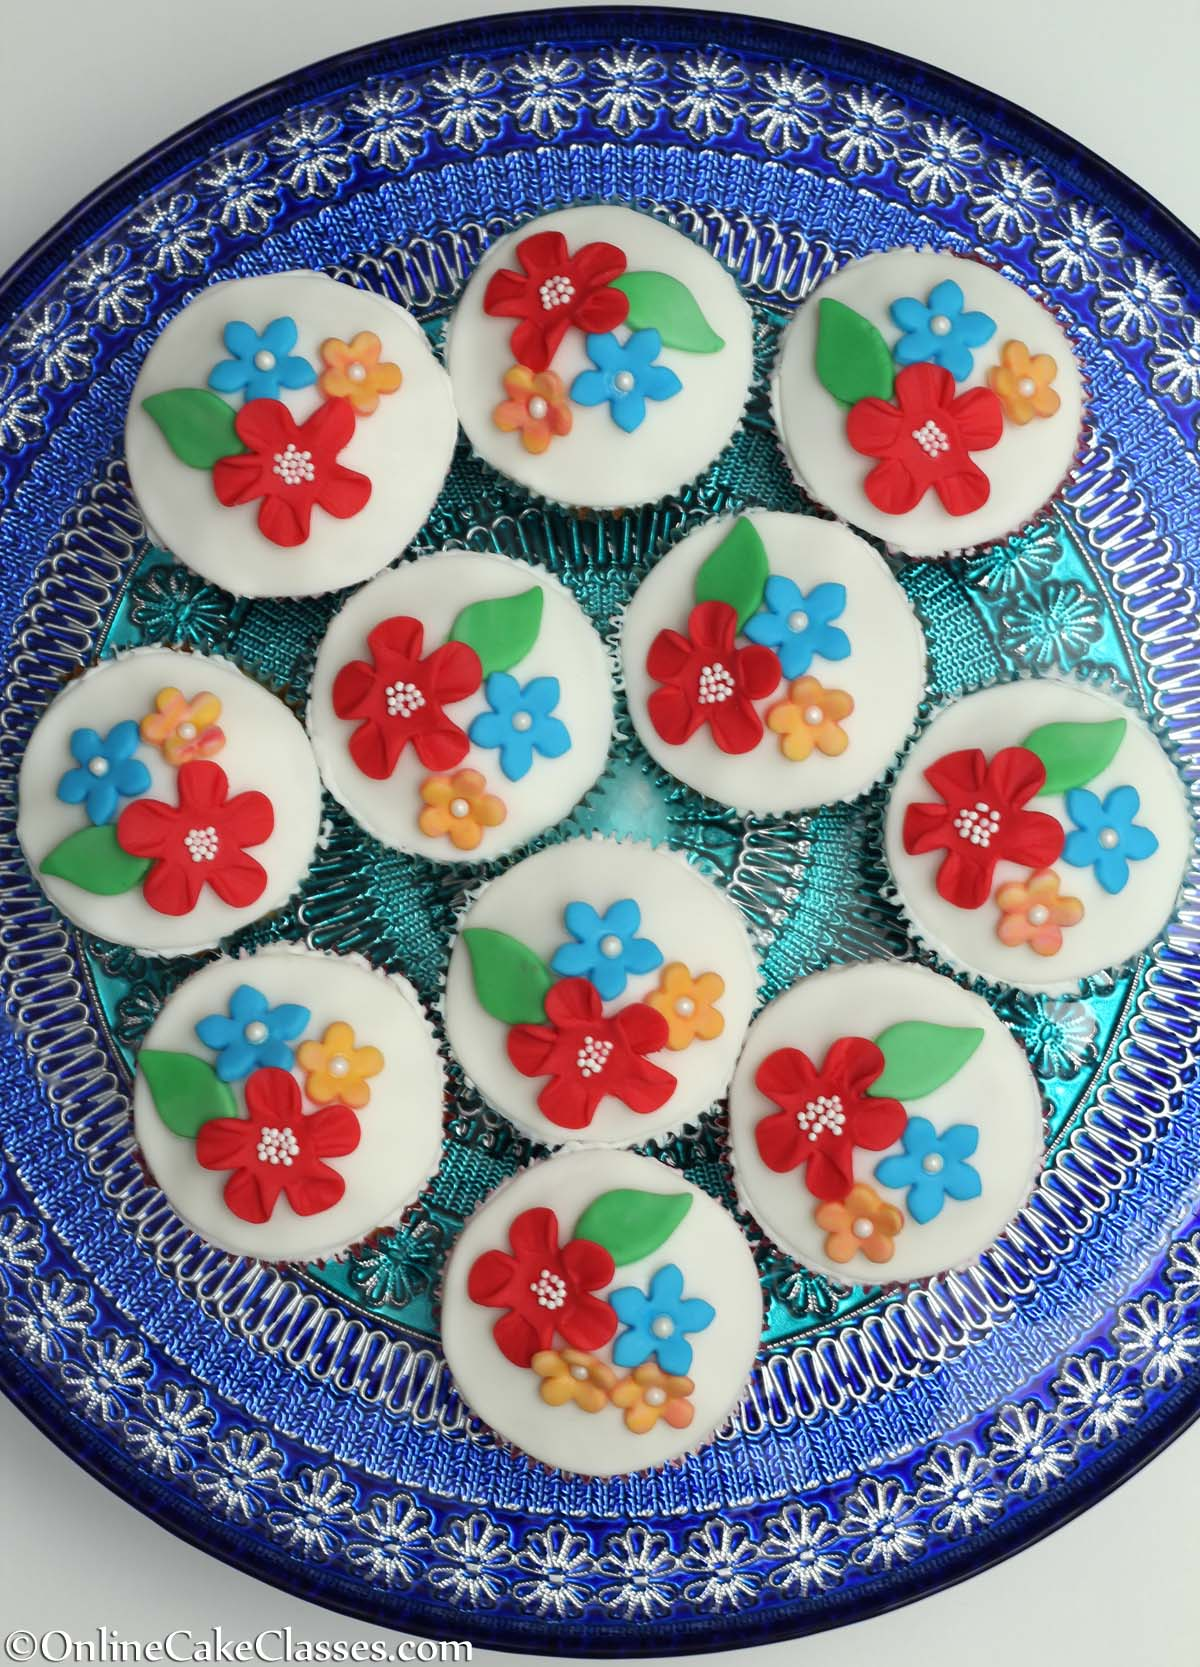 Vanilla Cup Cakes with flowers